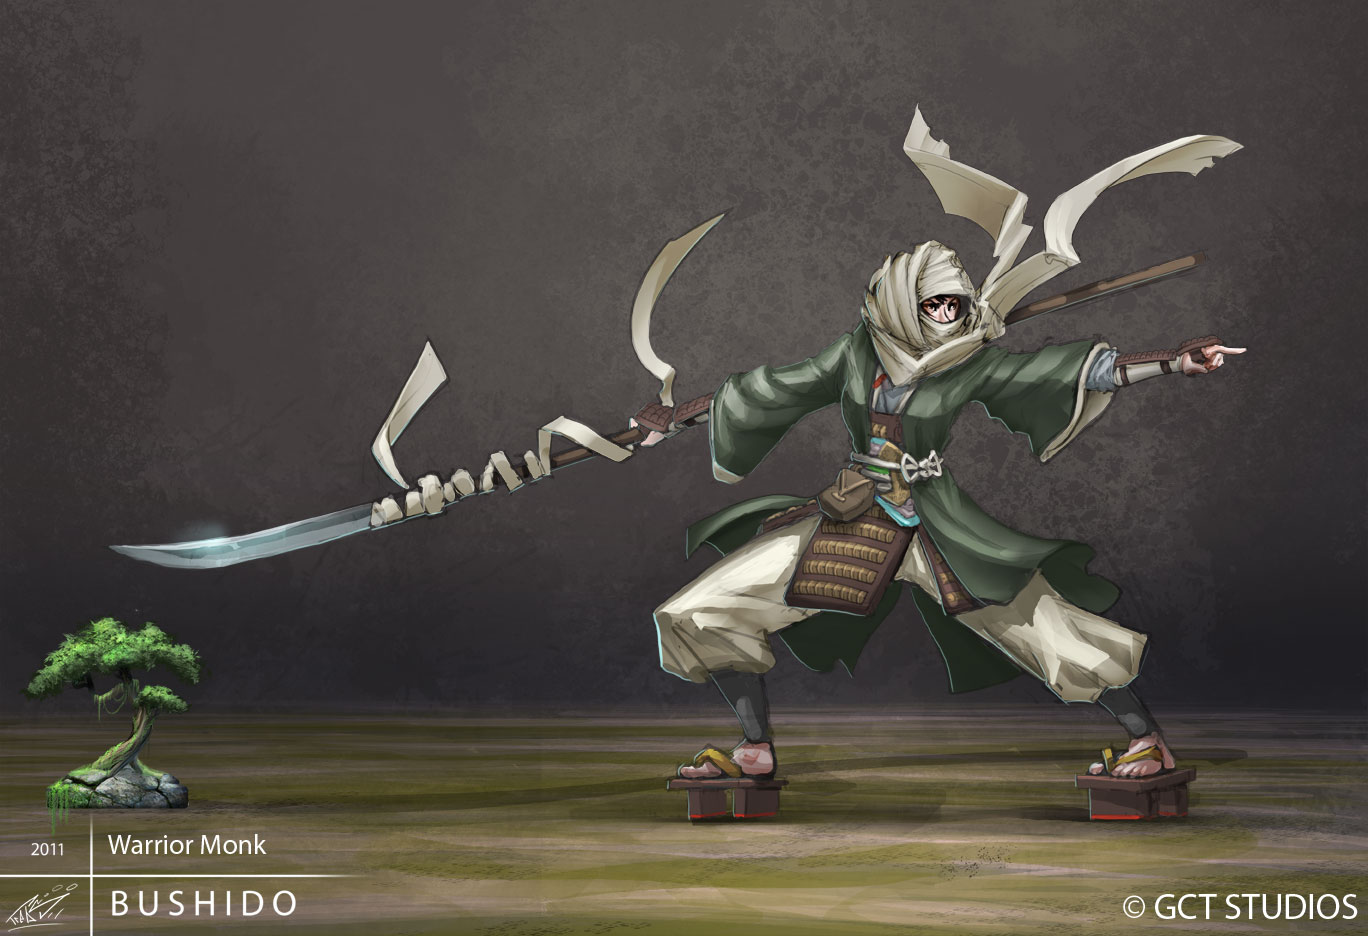 http://www.bushido-thegame.com/sites/default/files/imagepicker/3/WarMonk001e.jpg